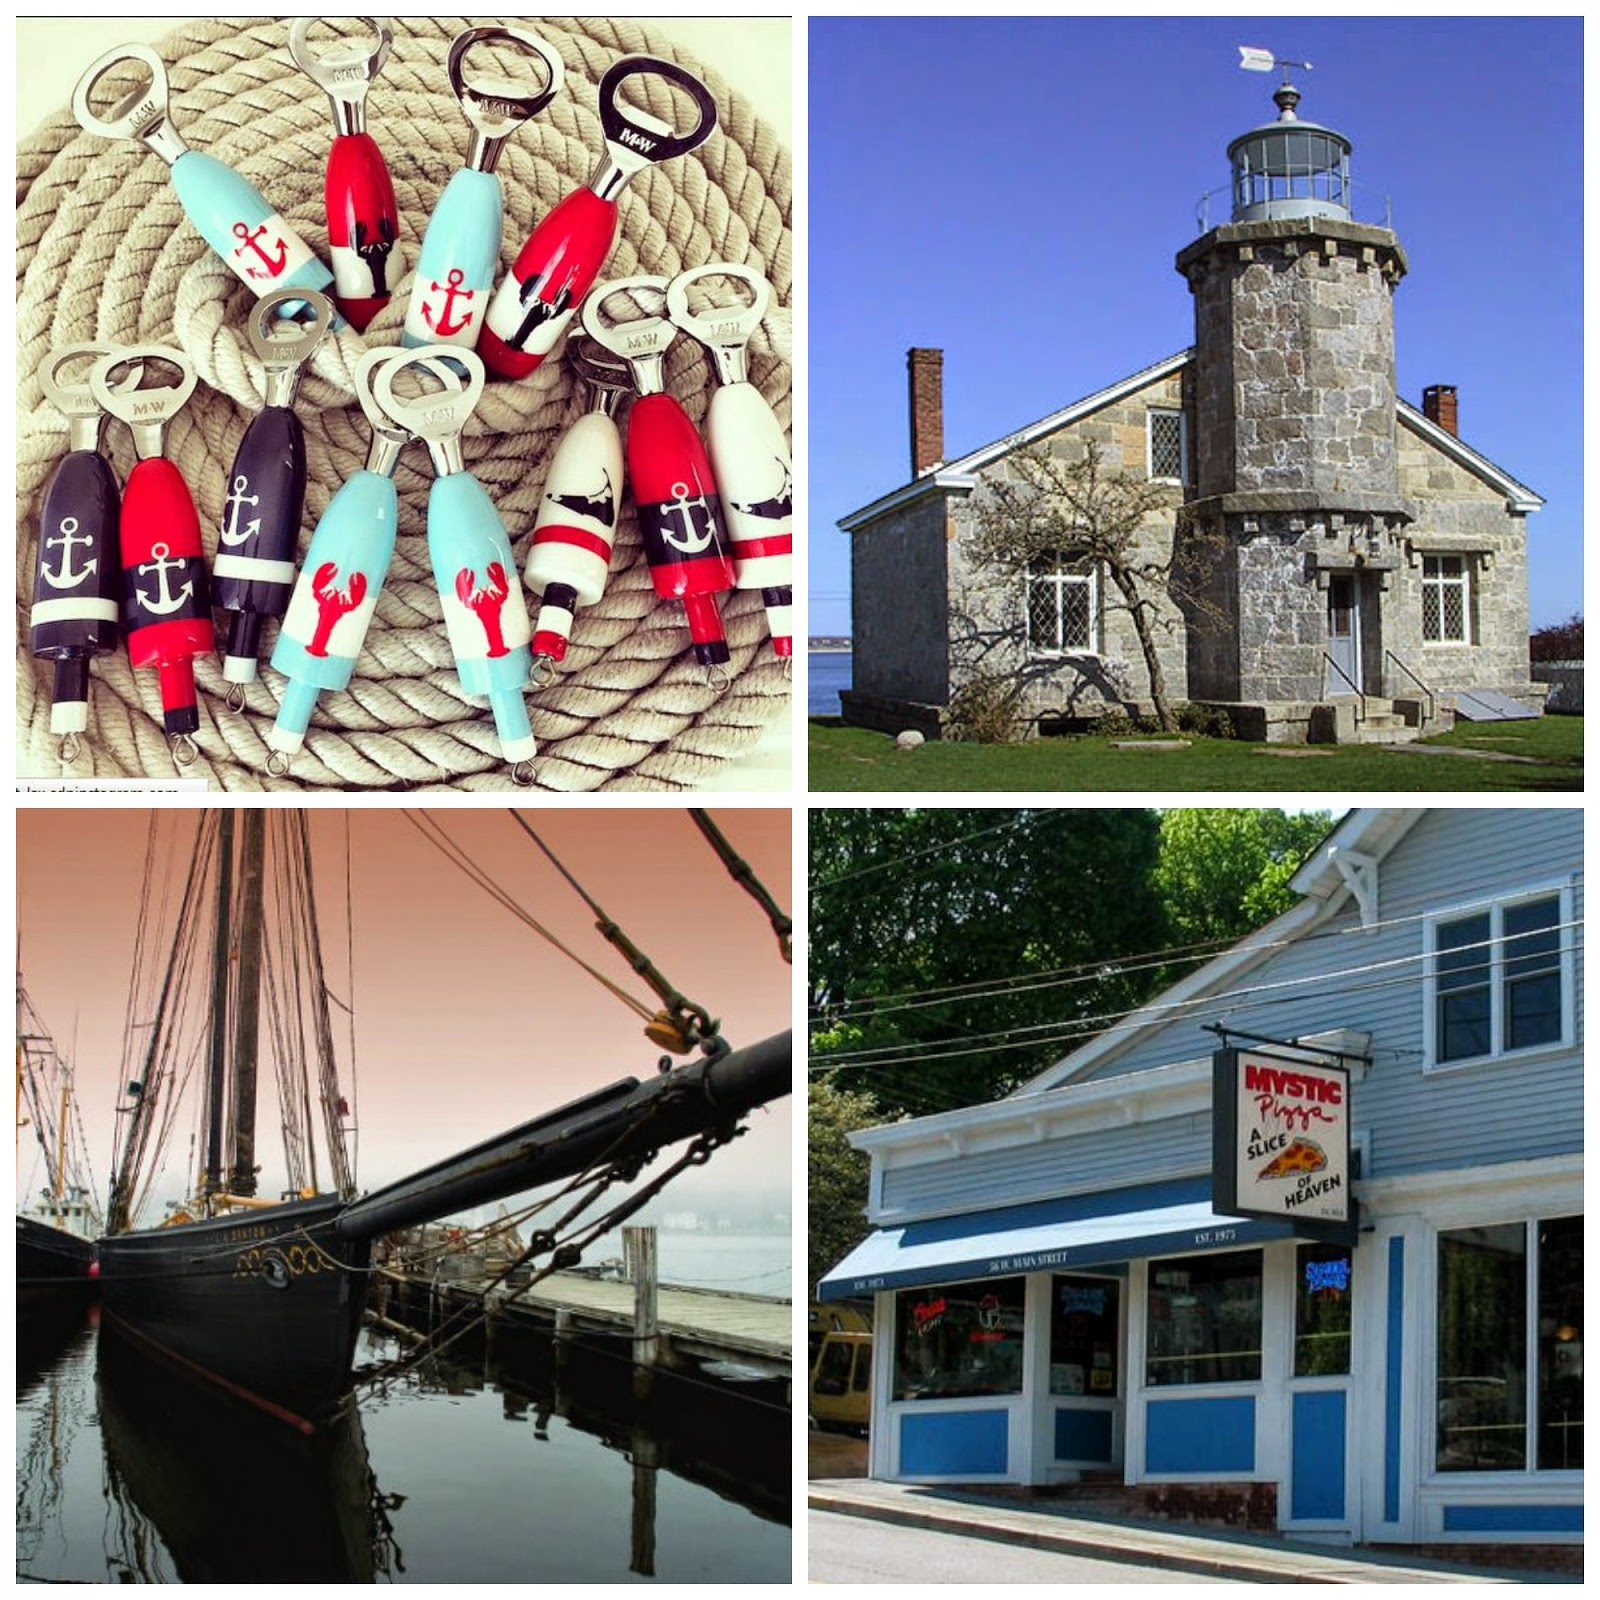 Destination Nautical: Mystic, Connecticut